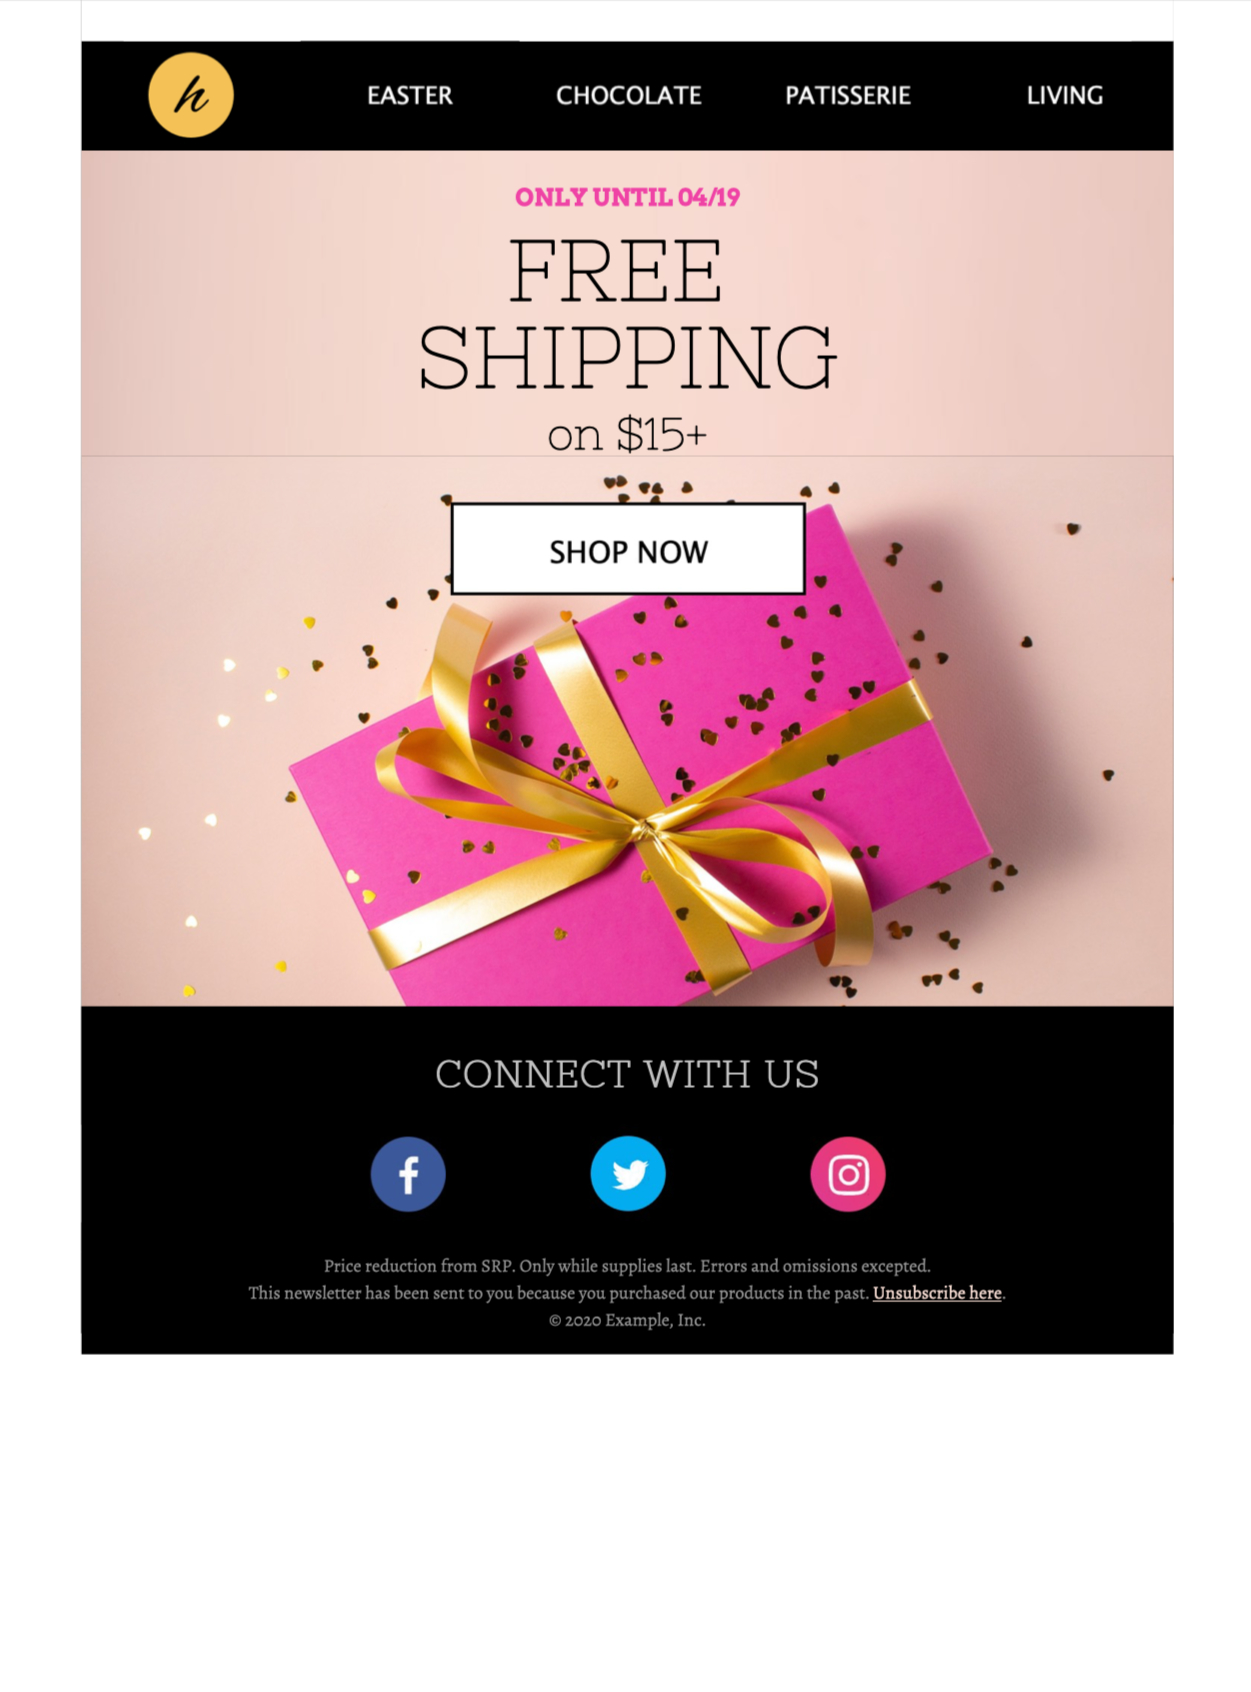 easter shopping html email design for an easter promotion